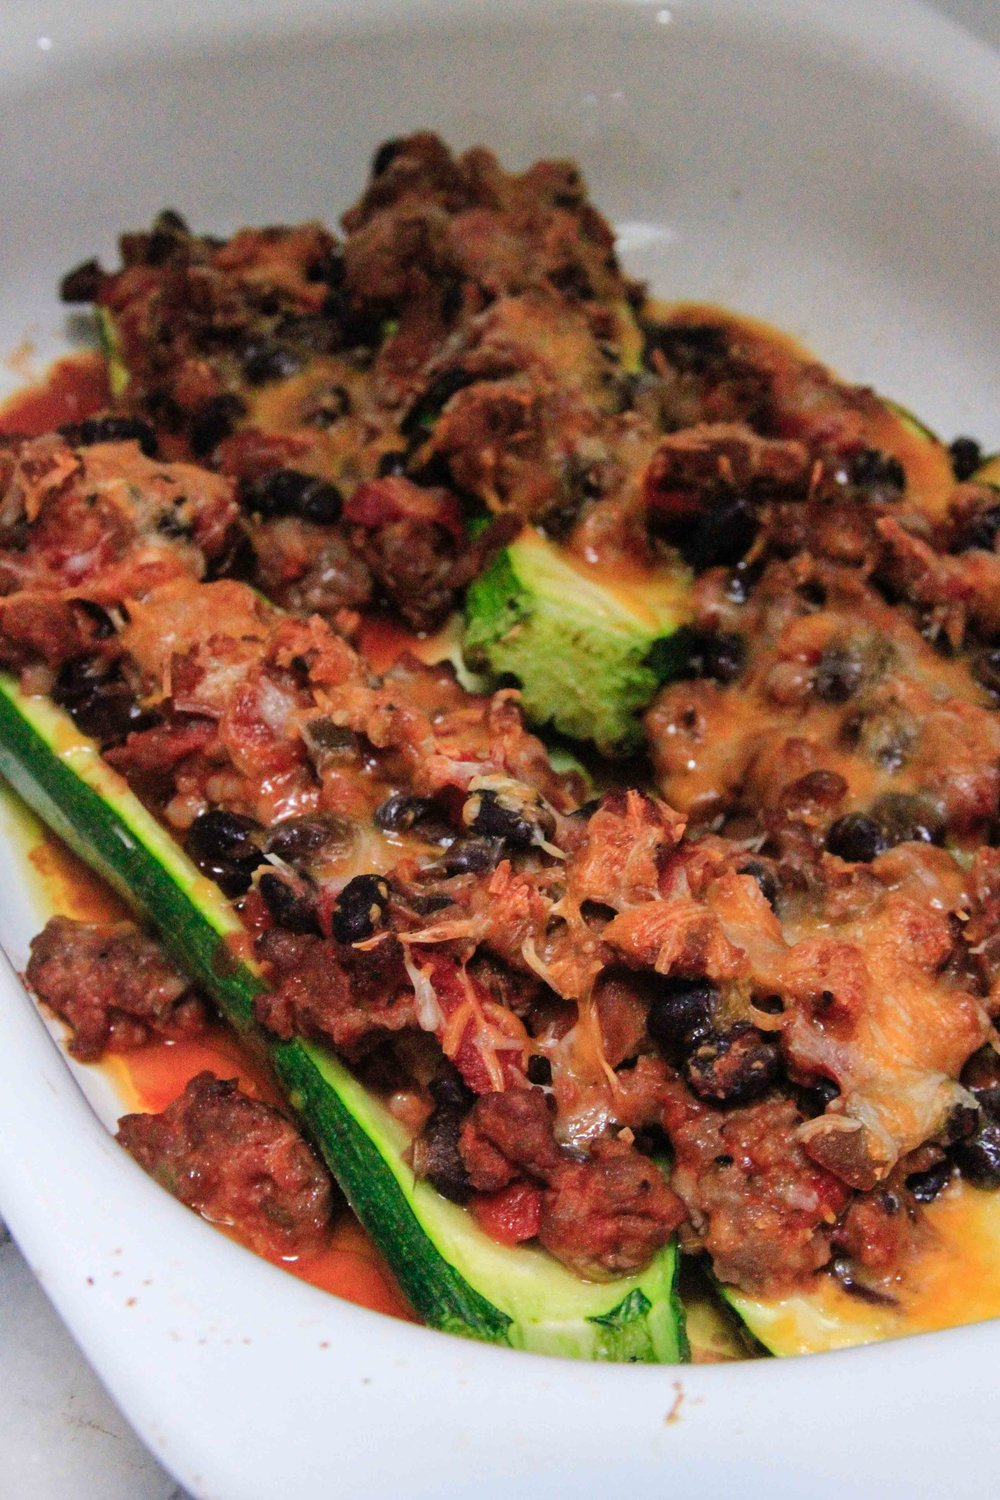 Chili-stuffed zucchini